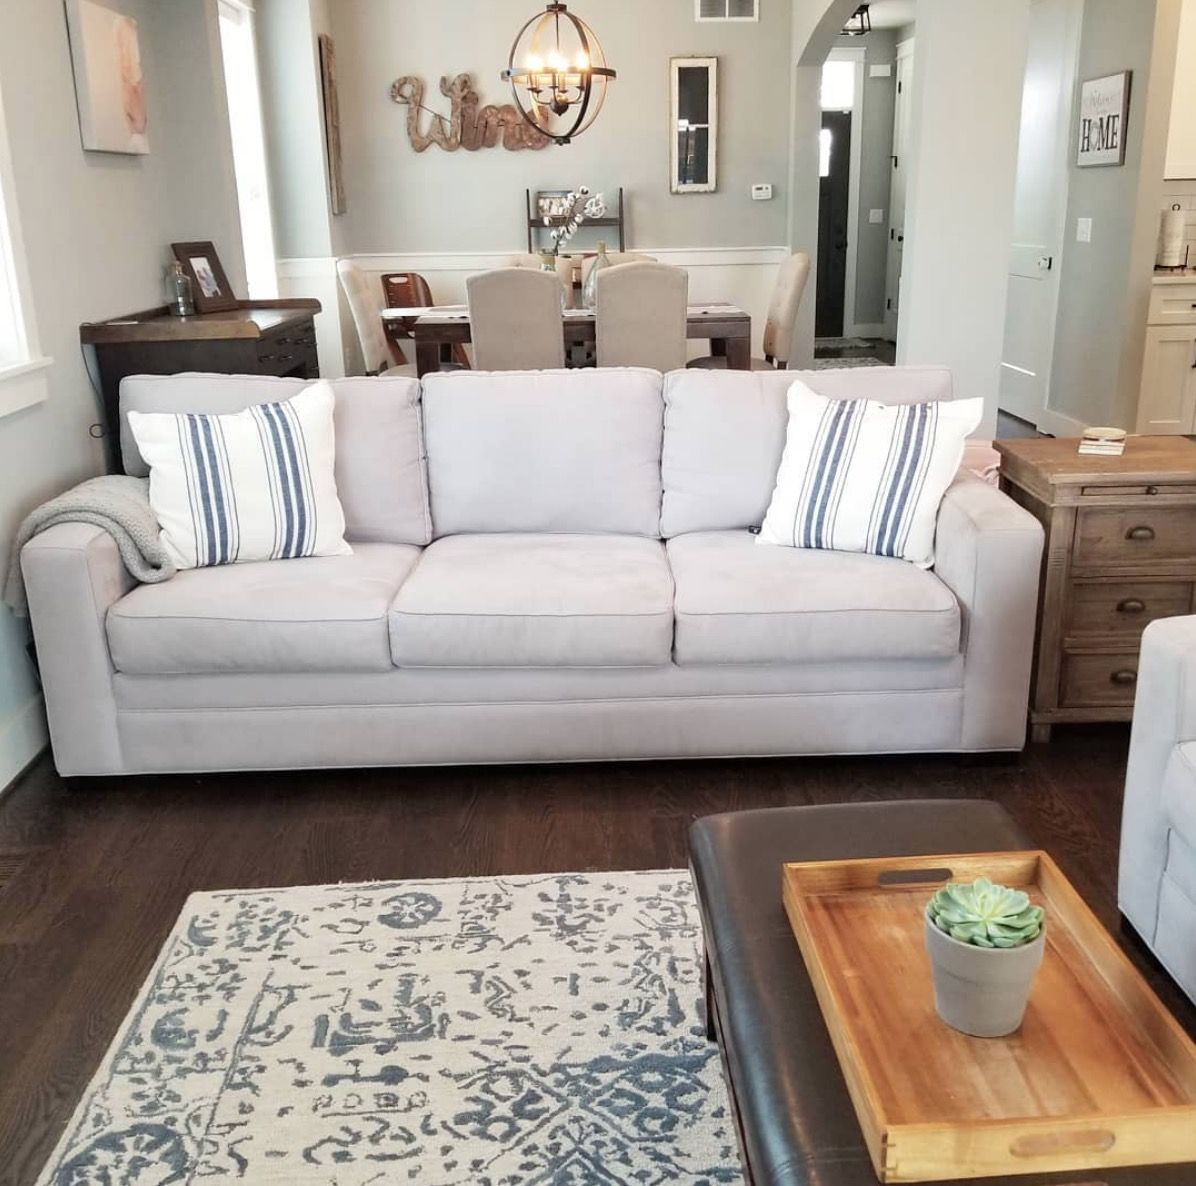 Modern Farmhouse Living Room Grey Couch Open Concept Farmhouse Decor Farm House Living Room Modern Farmhouse Living Room Grey Couch Living Room